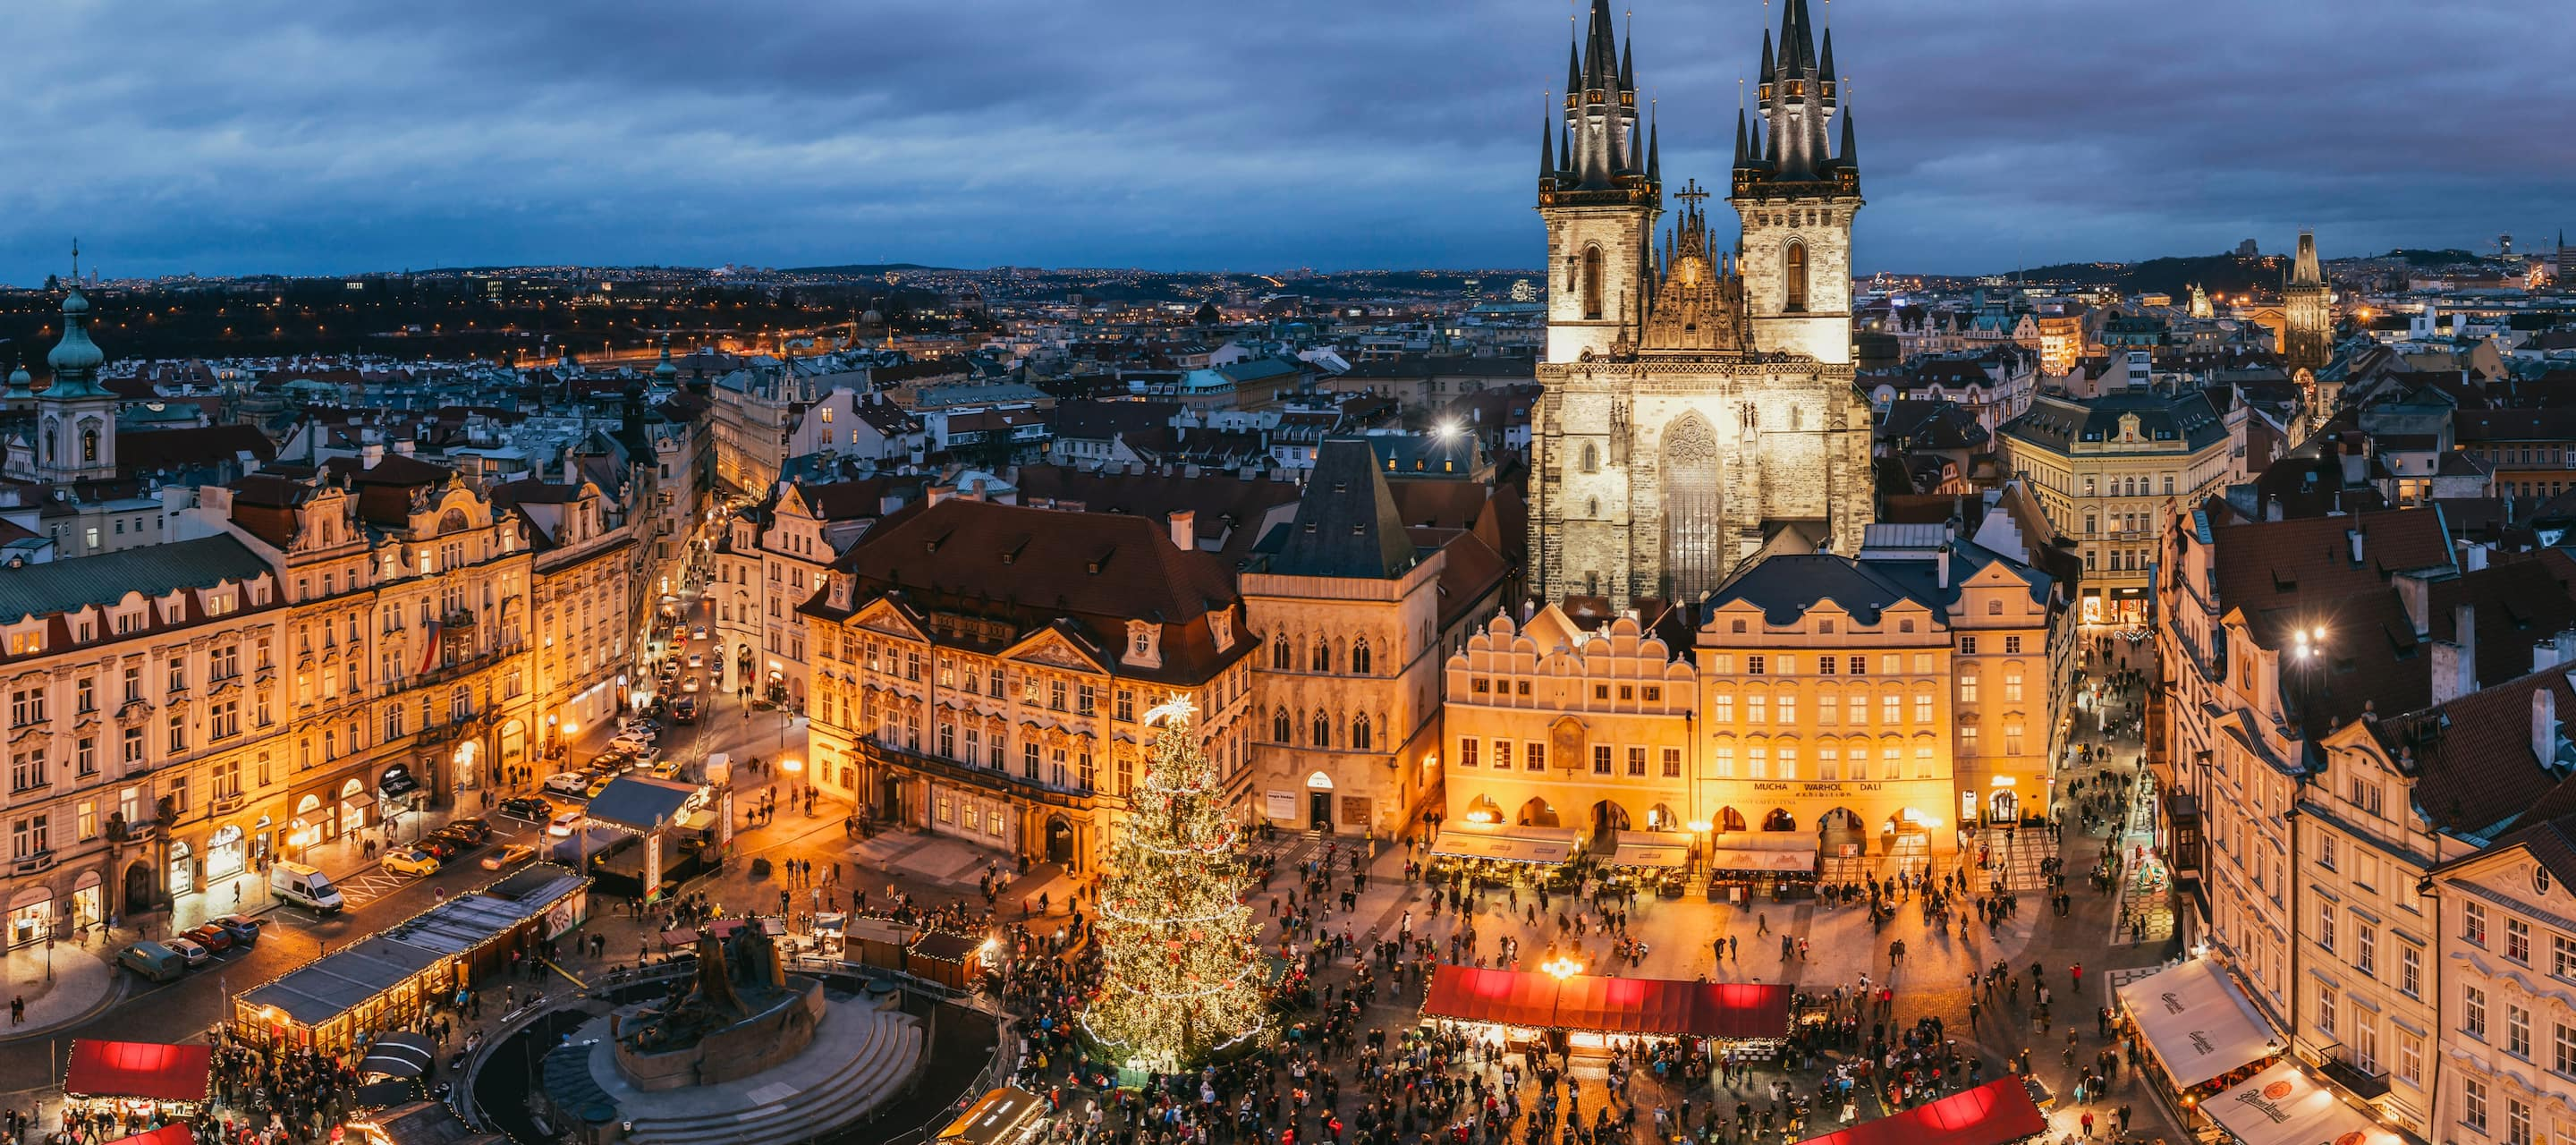 Christmas In Prague Book.The Pro S Guide To Christmas In Prague